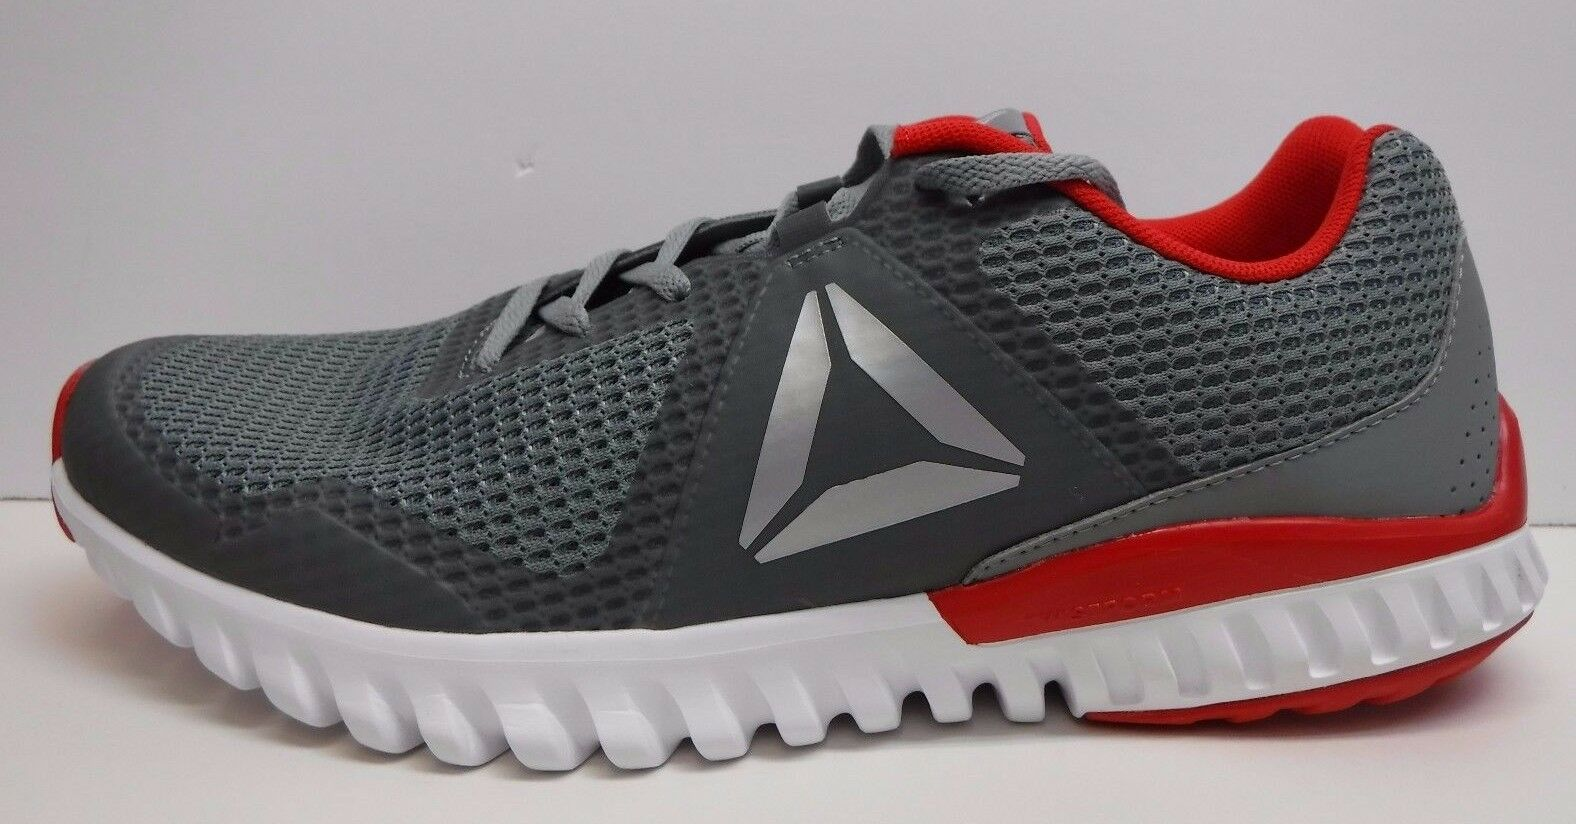 Reebok Size 11 Silver Gray Red running Sneakers New Mens Shoes